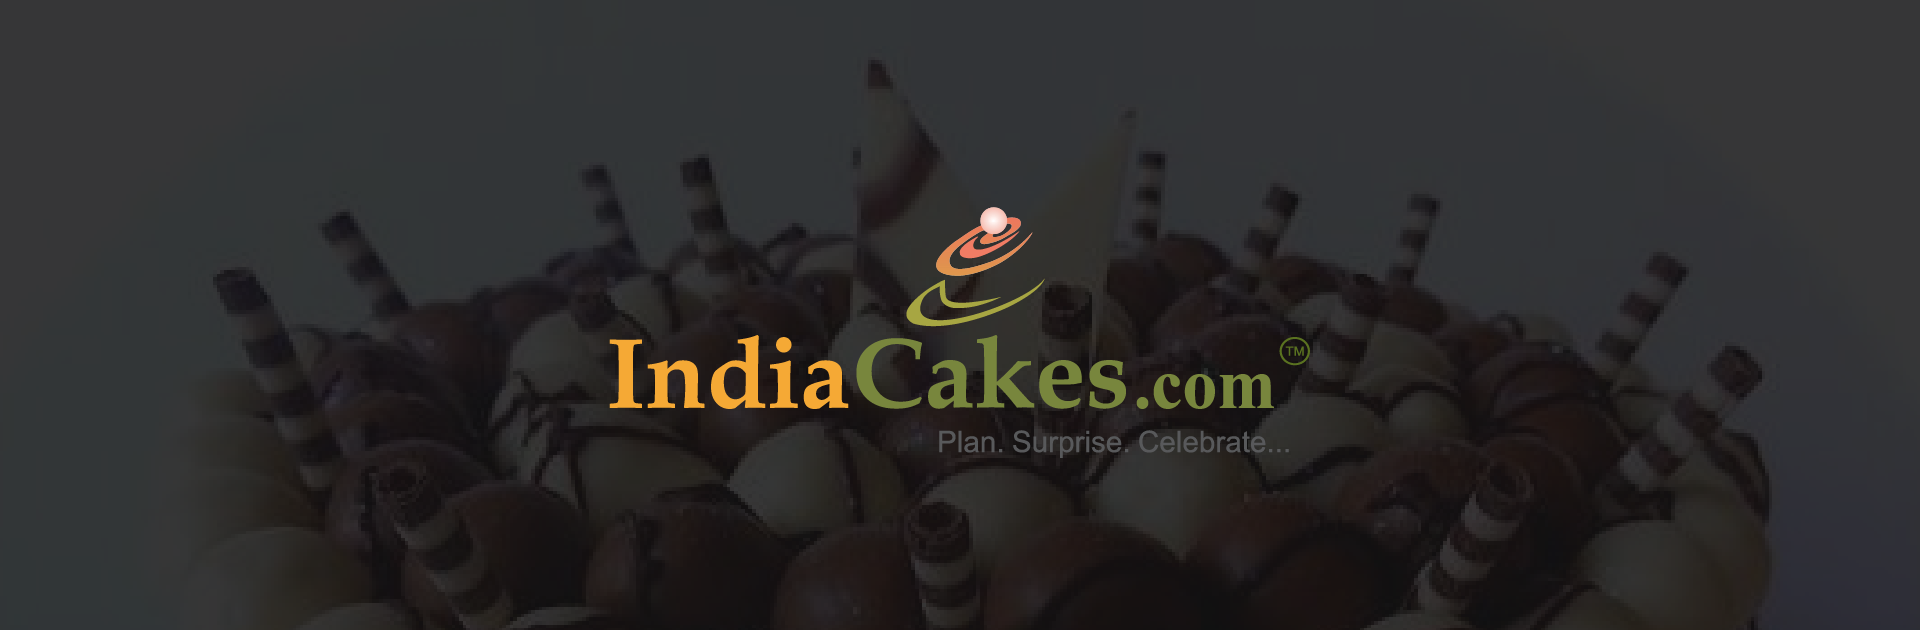 Indiacakes banner